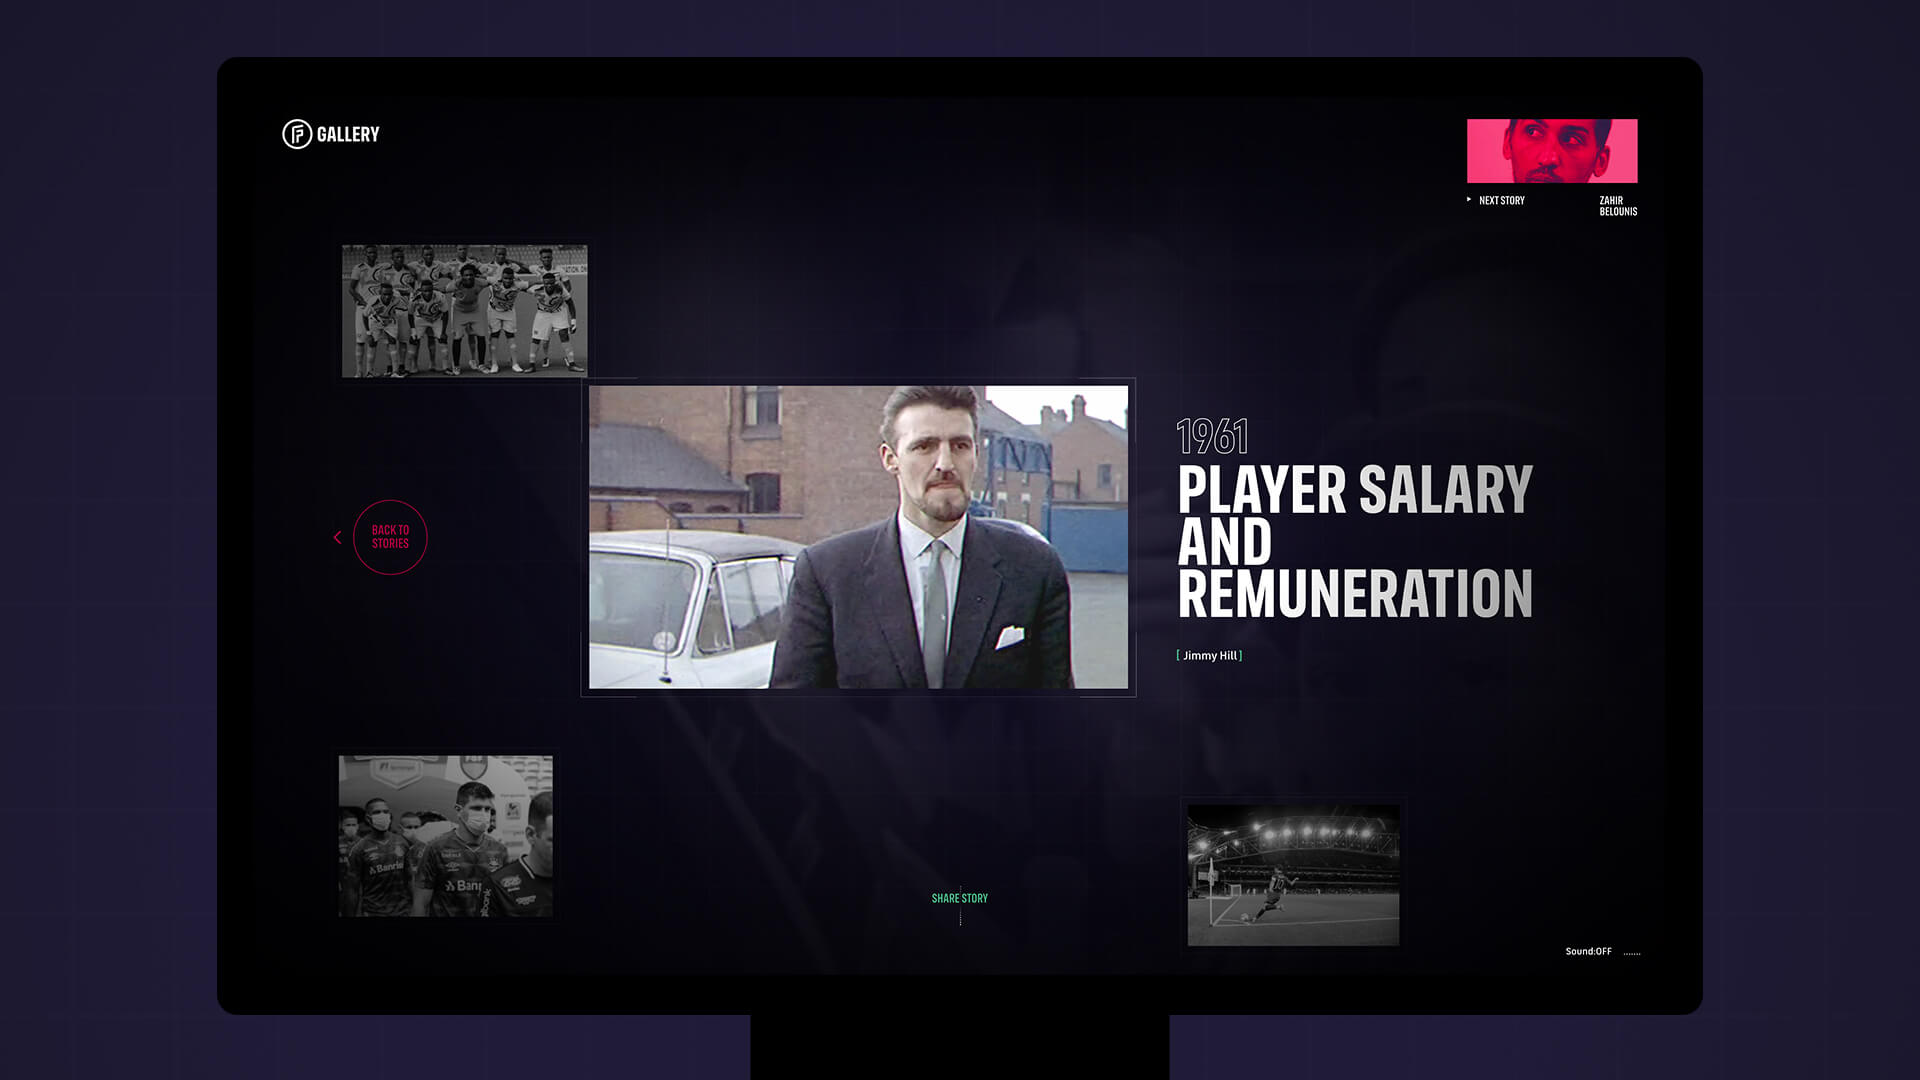 LL_The_FIFPRO_Gallery_website_slider_4